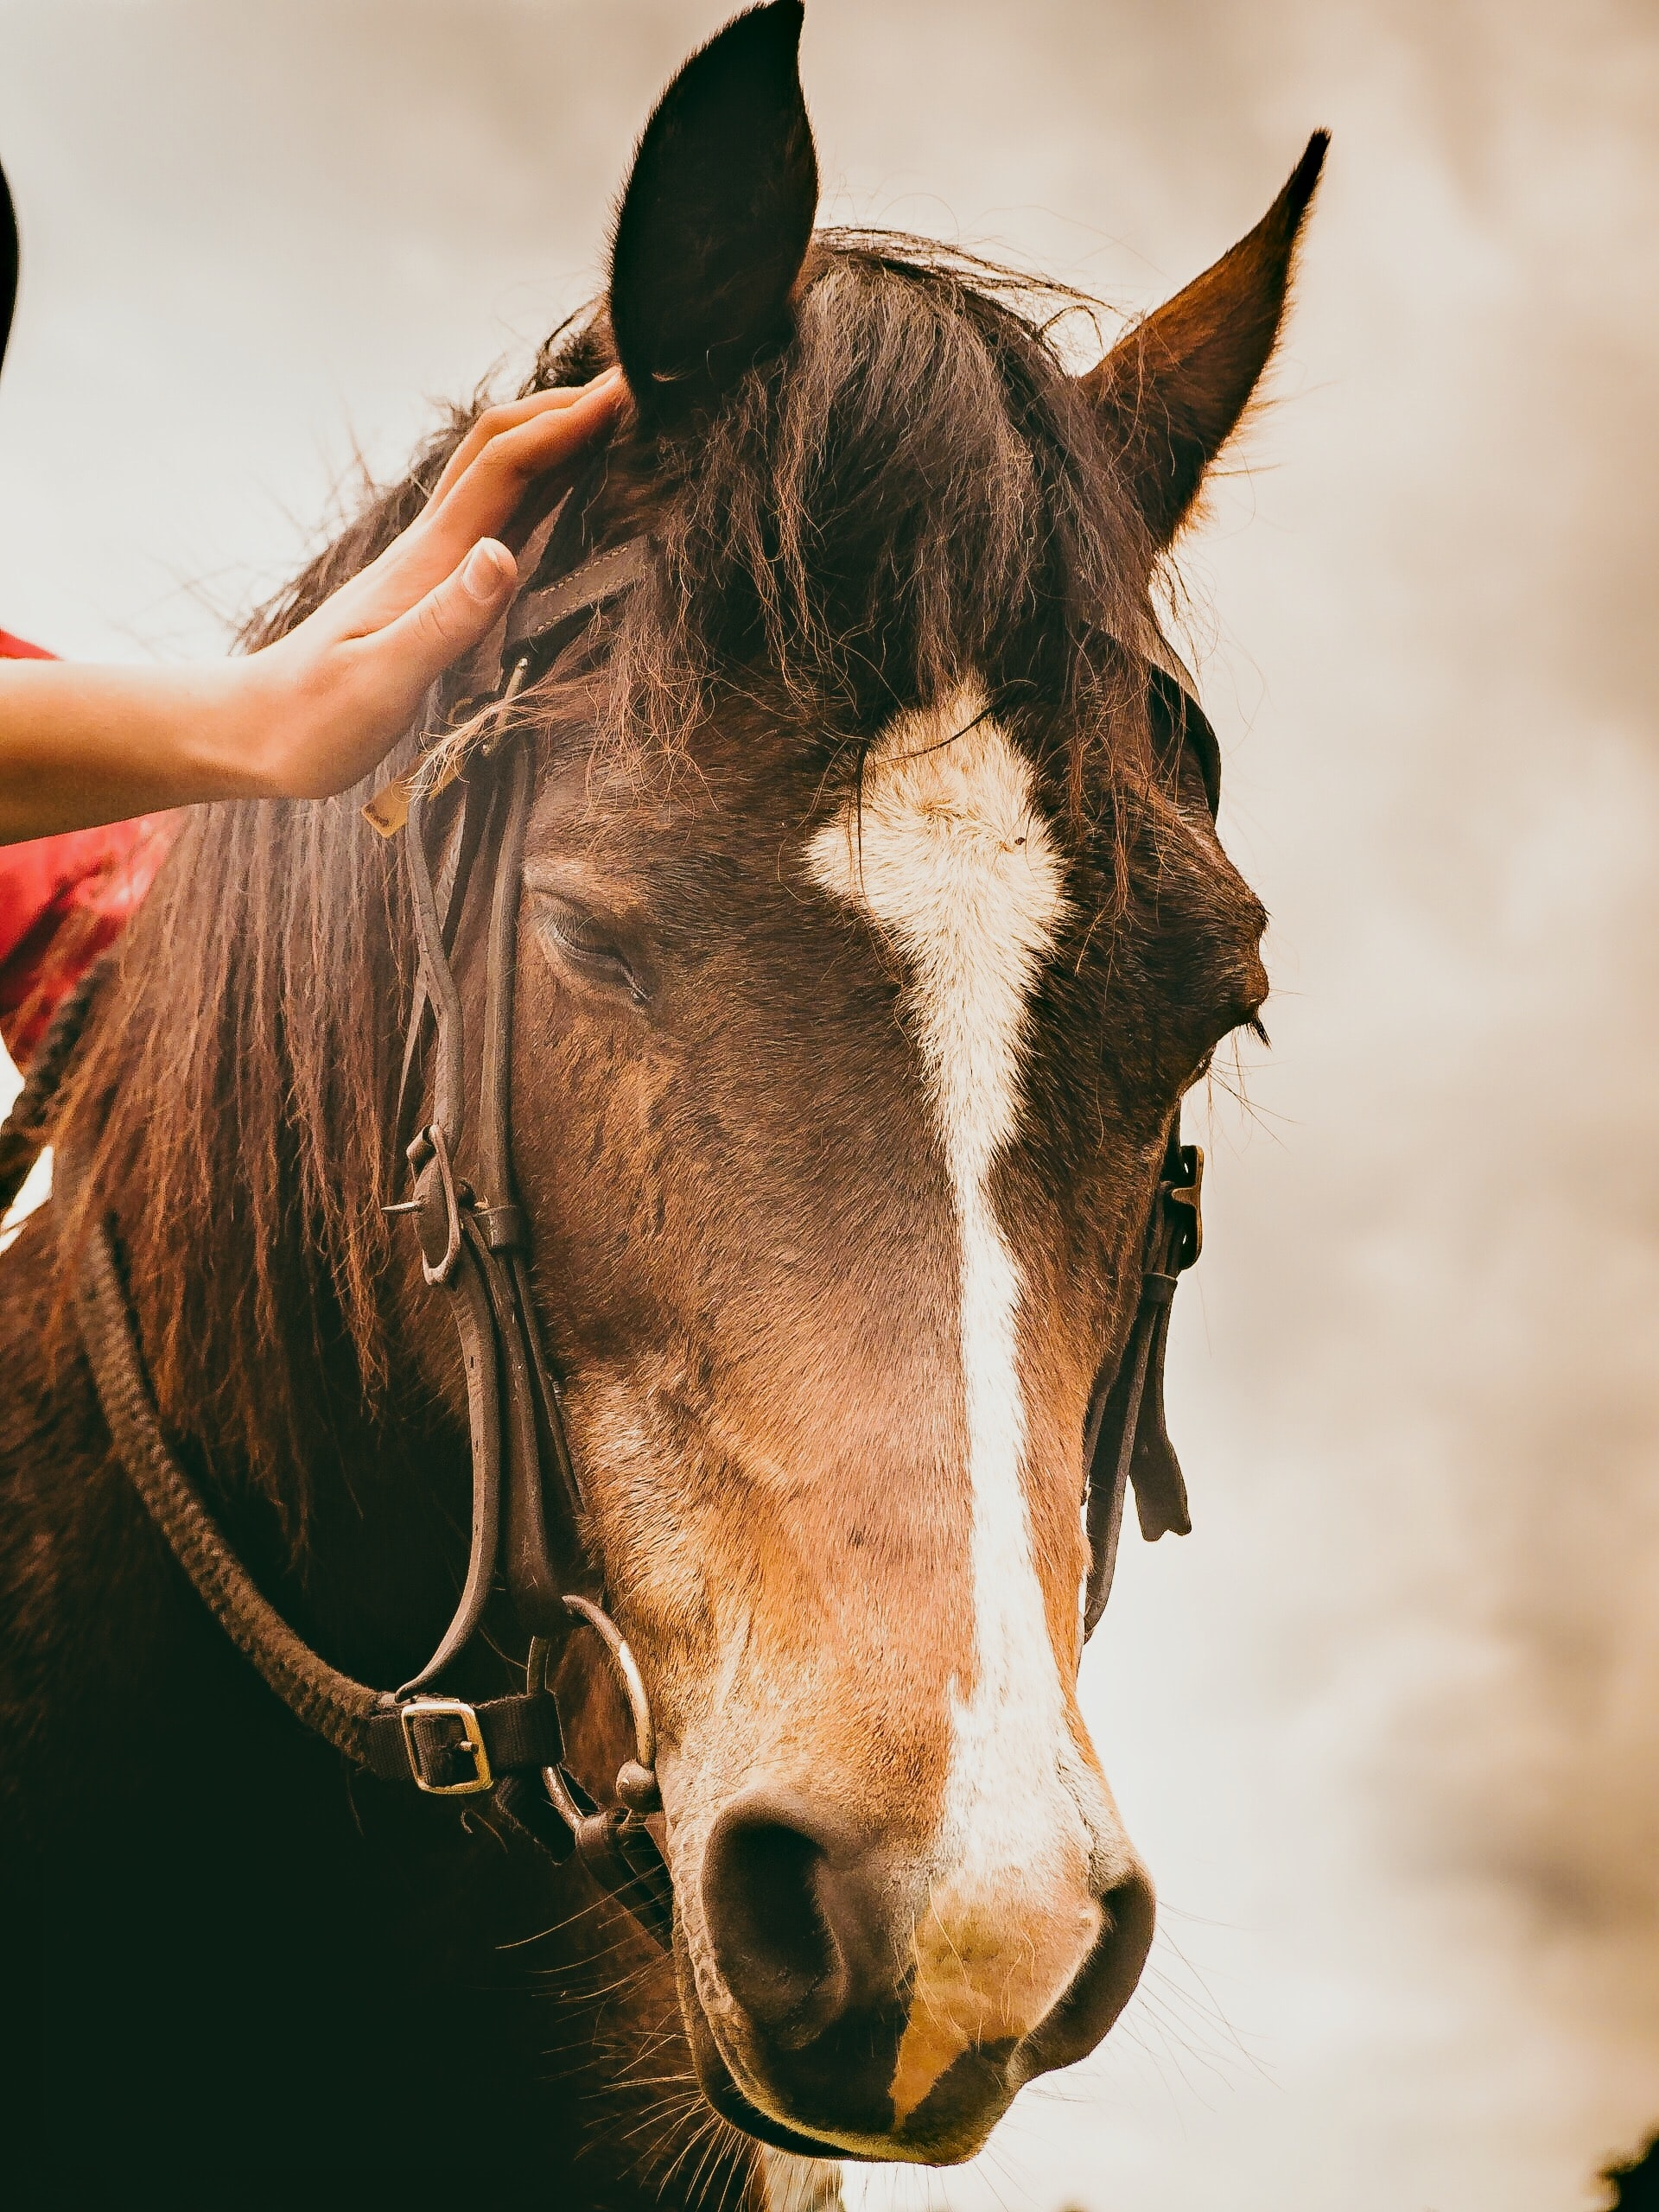 A woman's hand affectionately rests on the mane of a dark brown horse